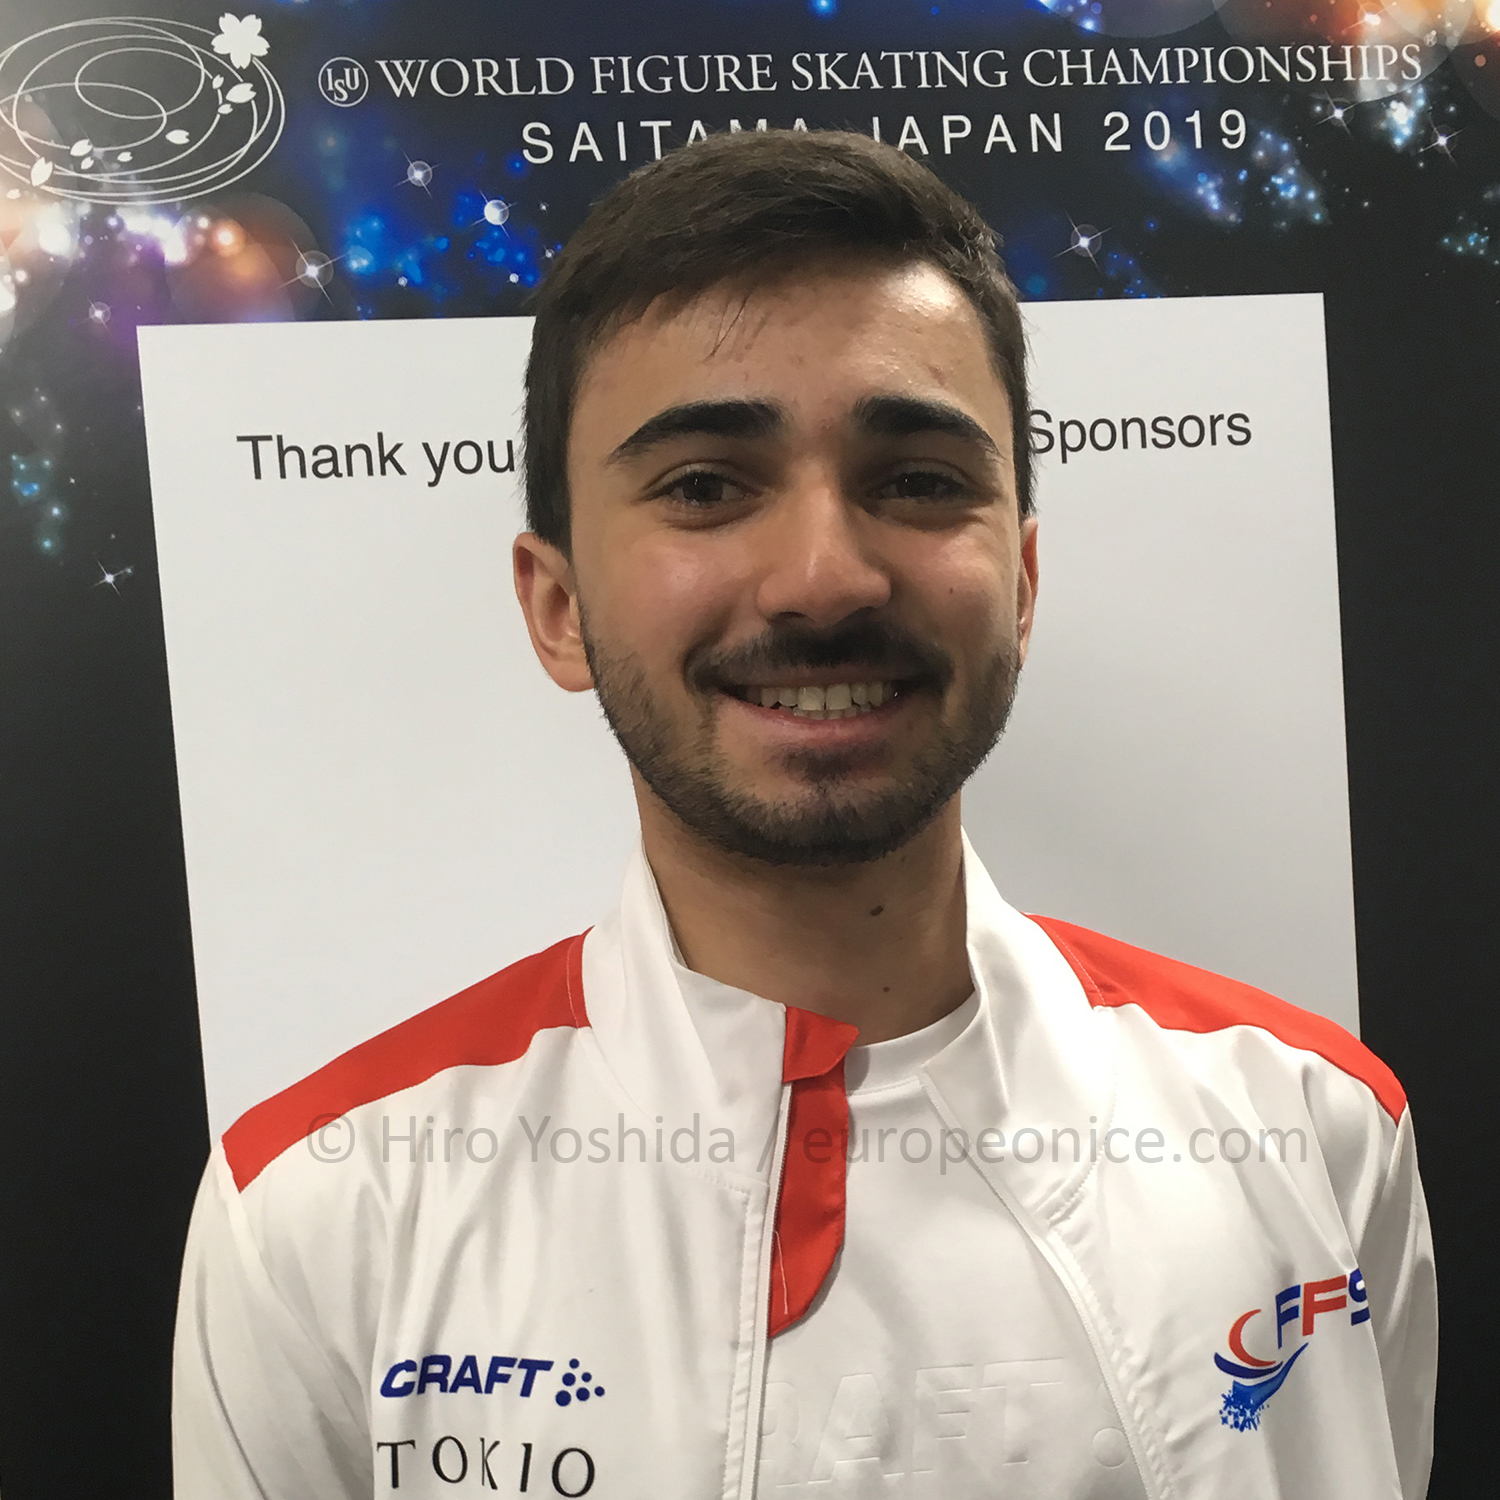 """Kévin Aymoz: """"My dream is not to be the champion""""   europeonice.com"""